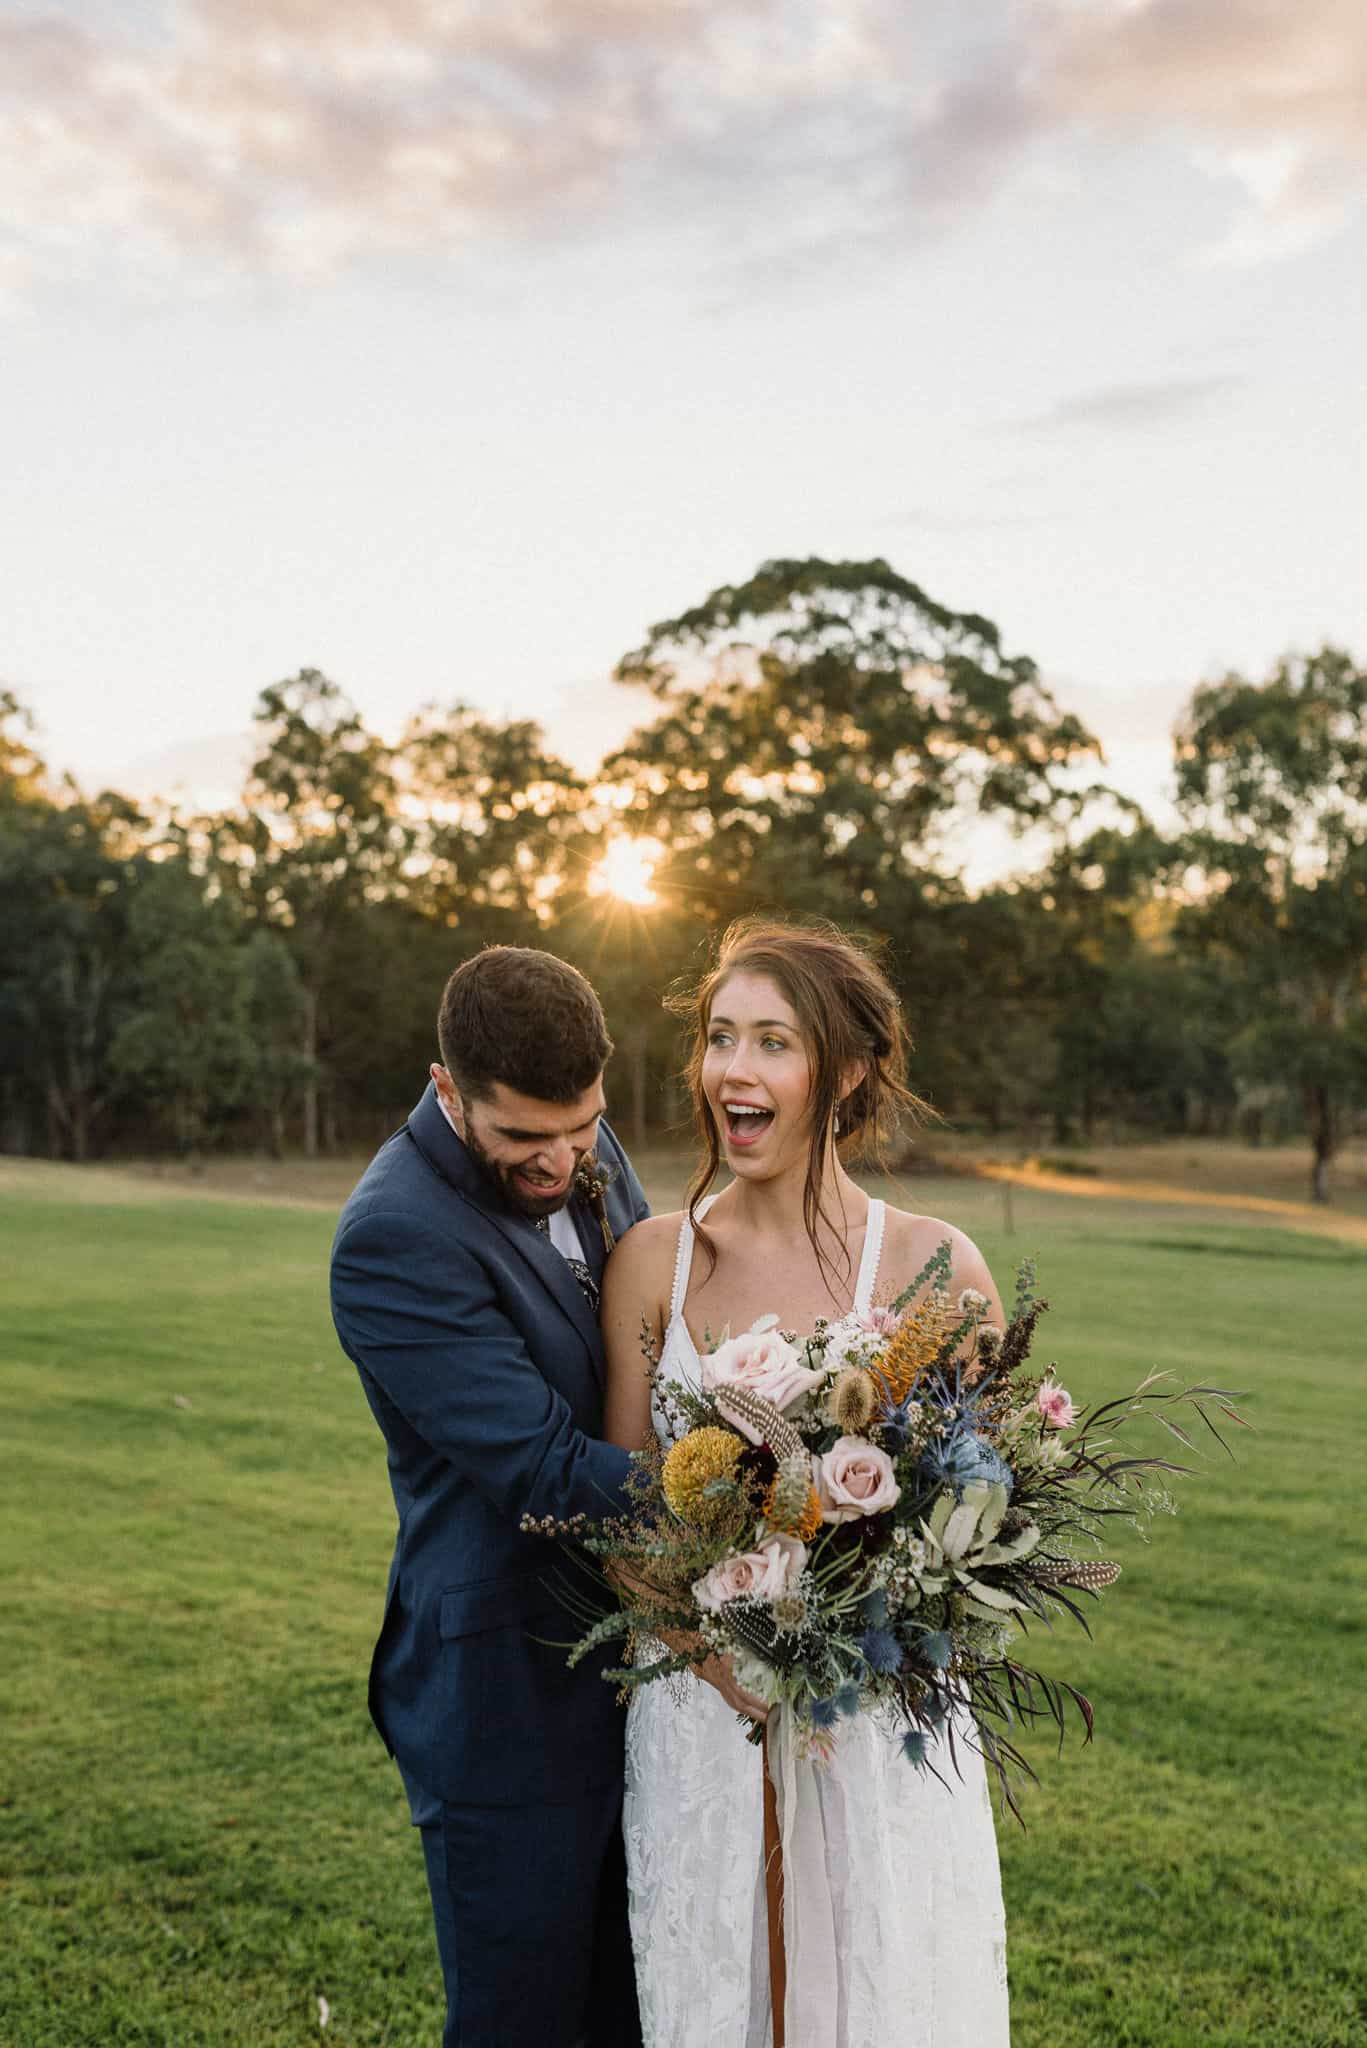 Golden hour at Estate Tuscany with newlywed couple Captured by James White Hunter Valley Wedding Photographer